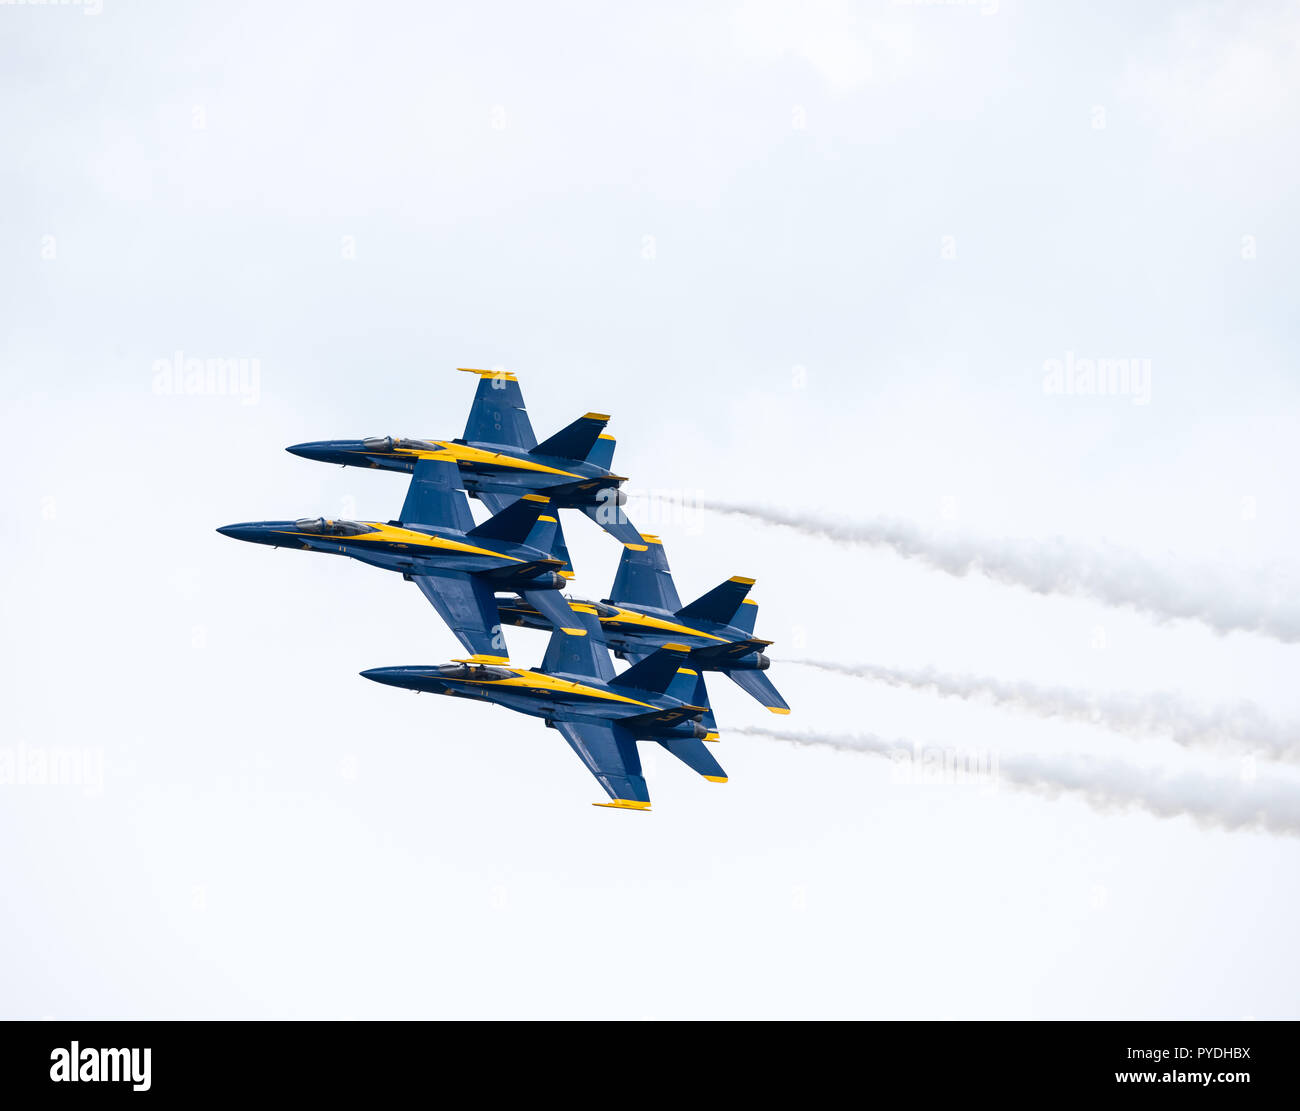 US Navy Blue Angels performing the Echelon Parade maneuver - Stock Image